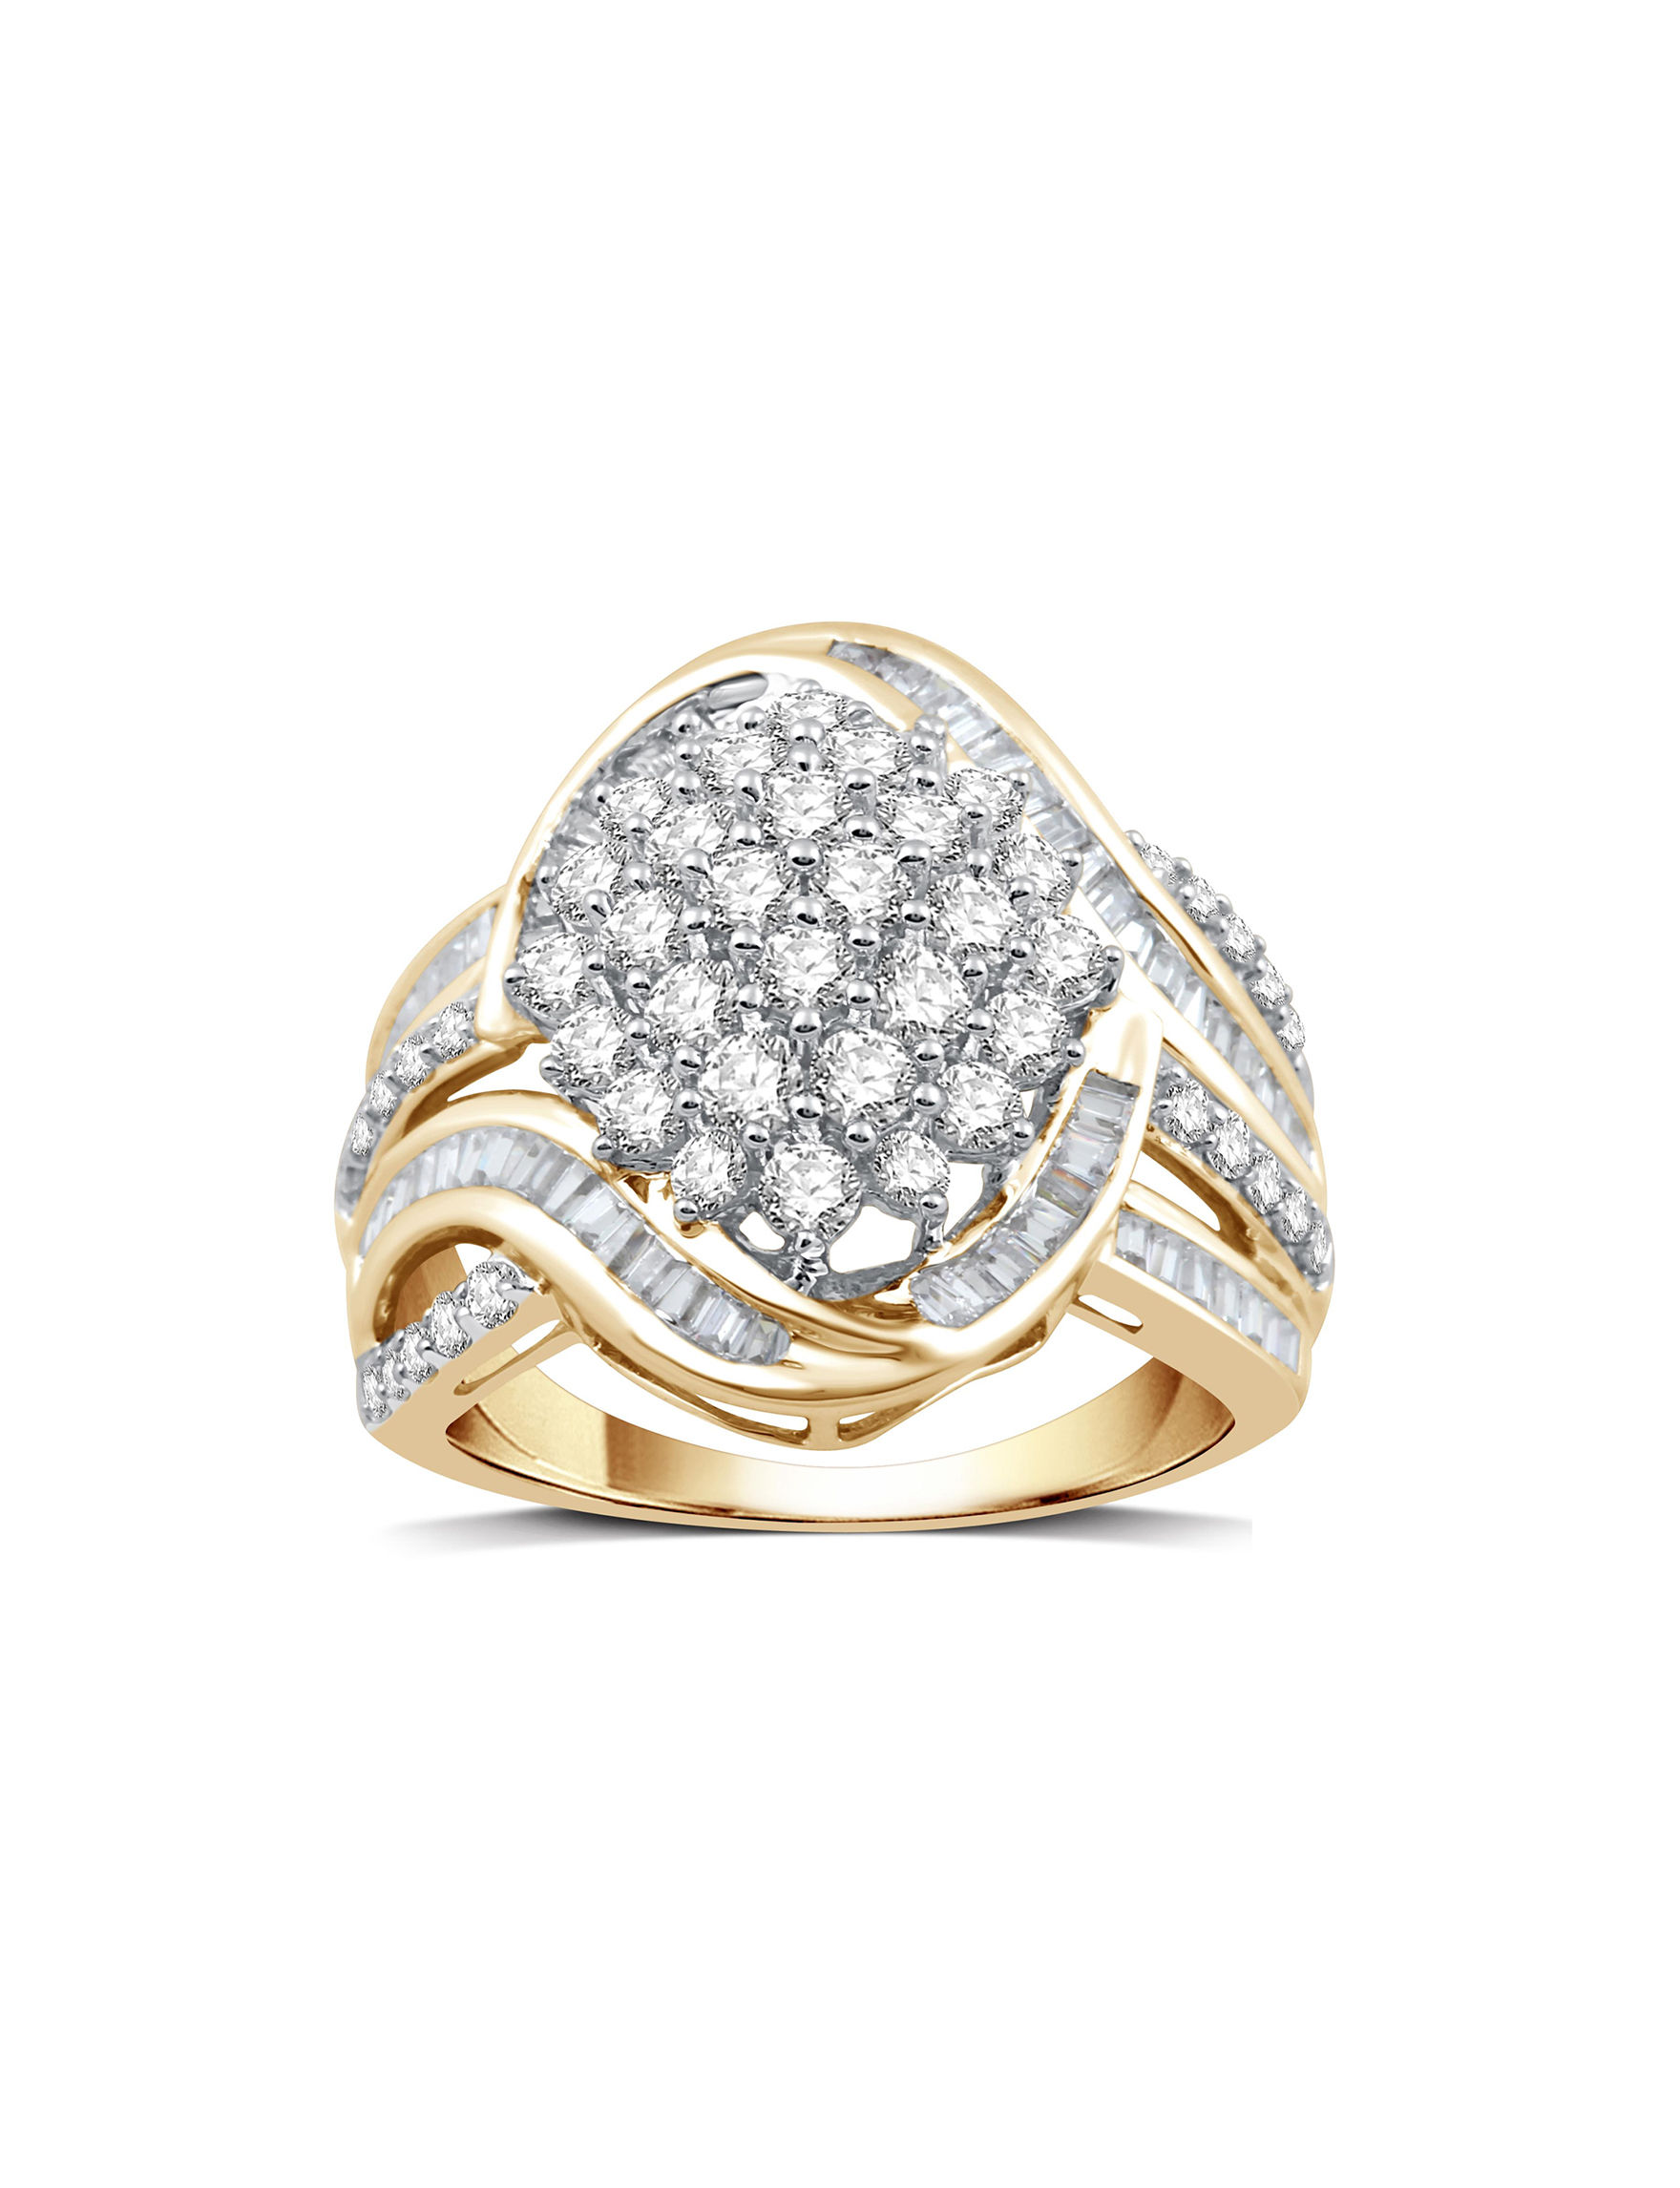 DeCarat Gold Rings Fine Jewelry